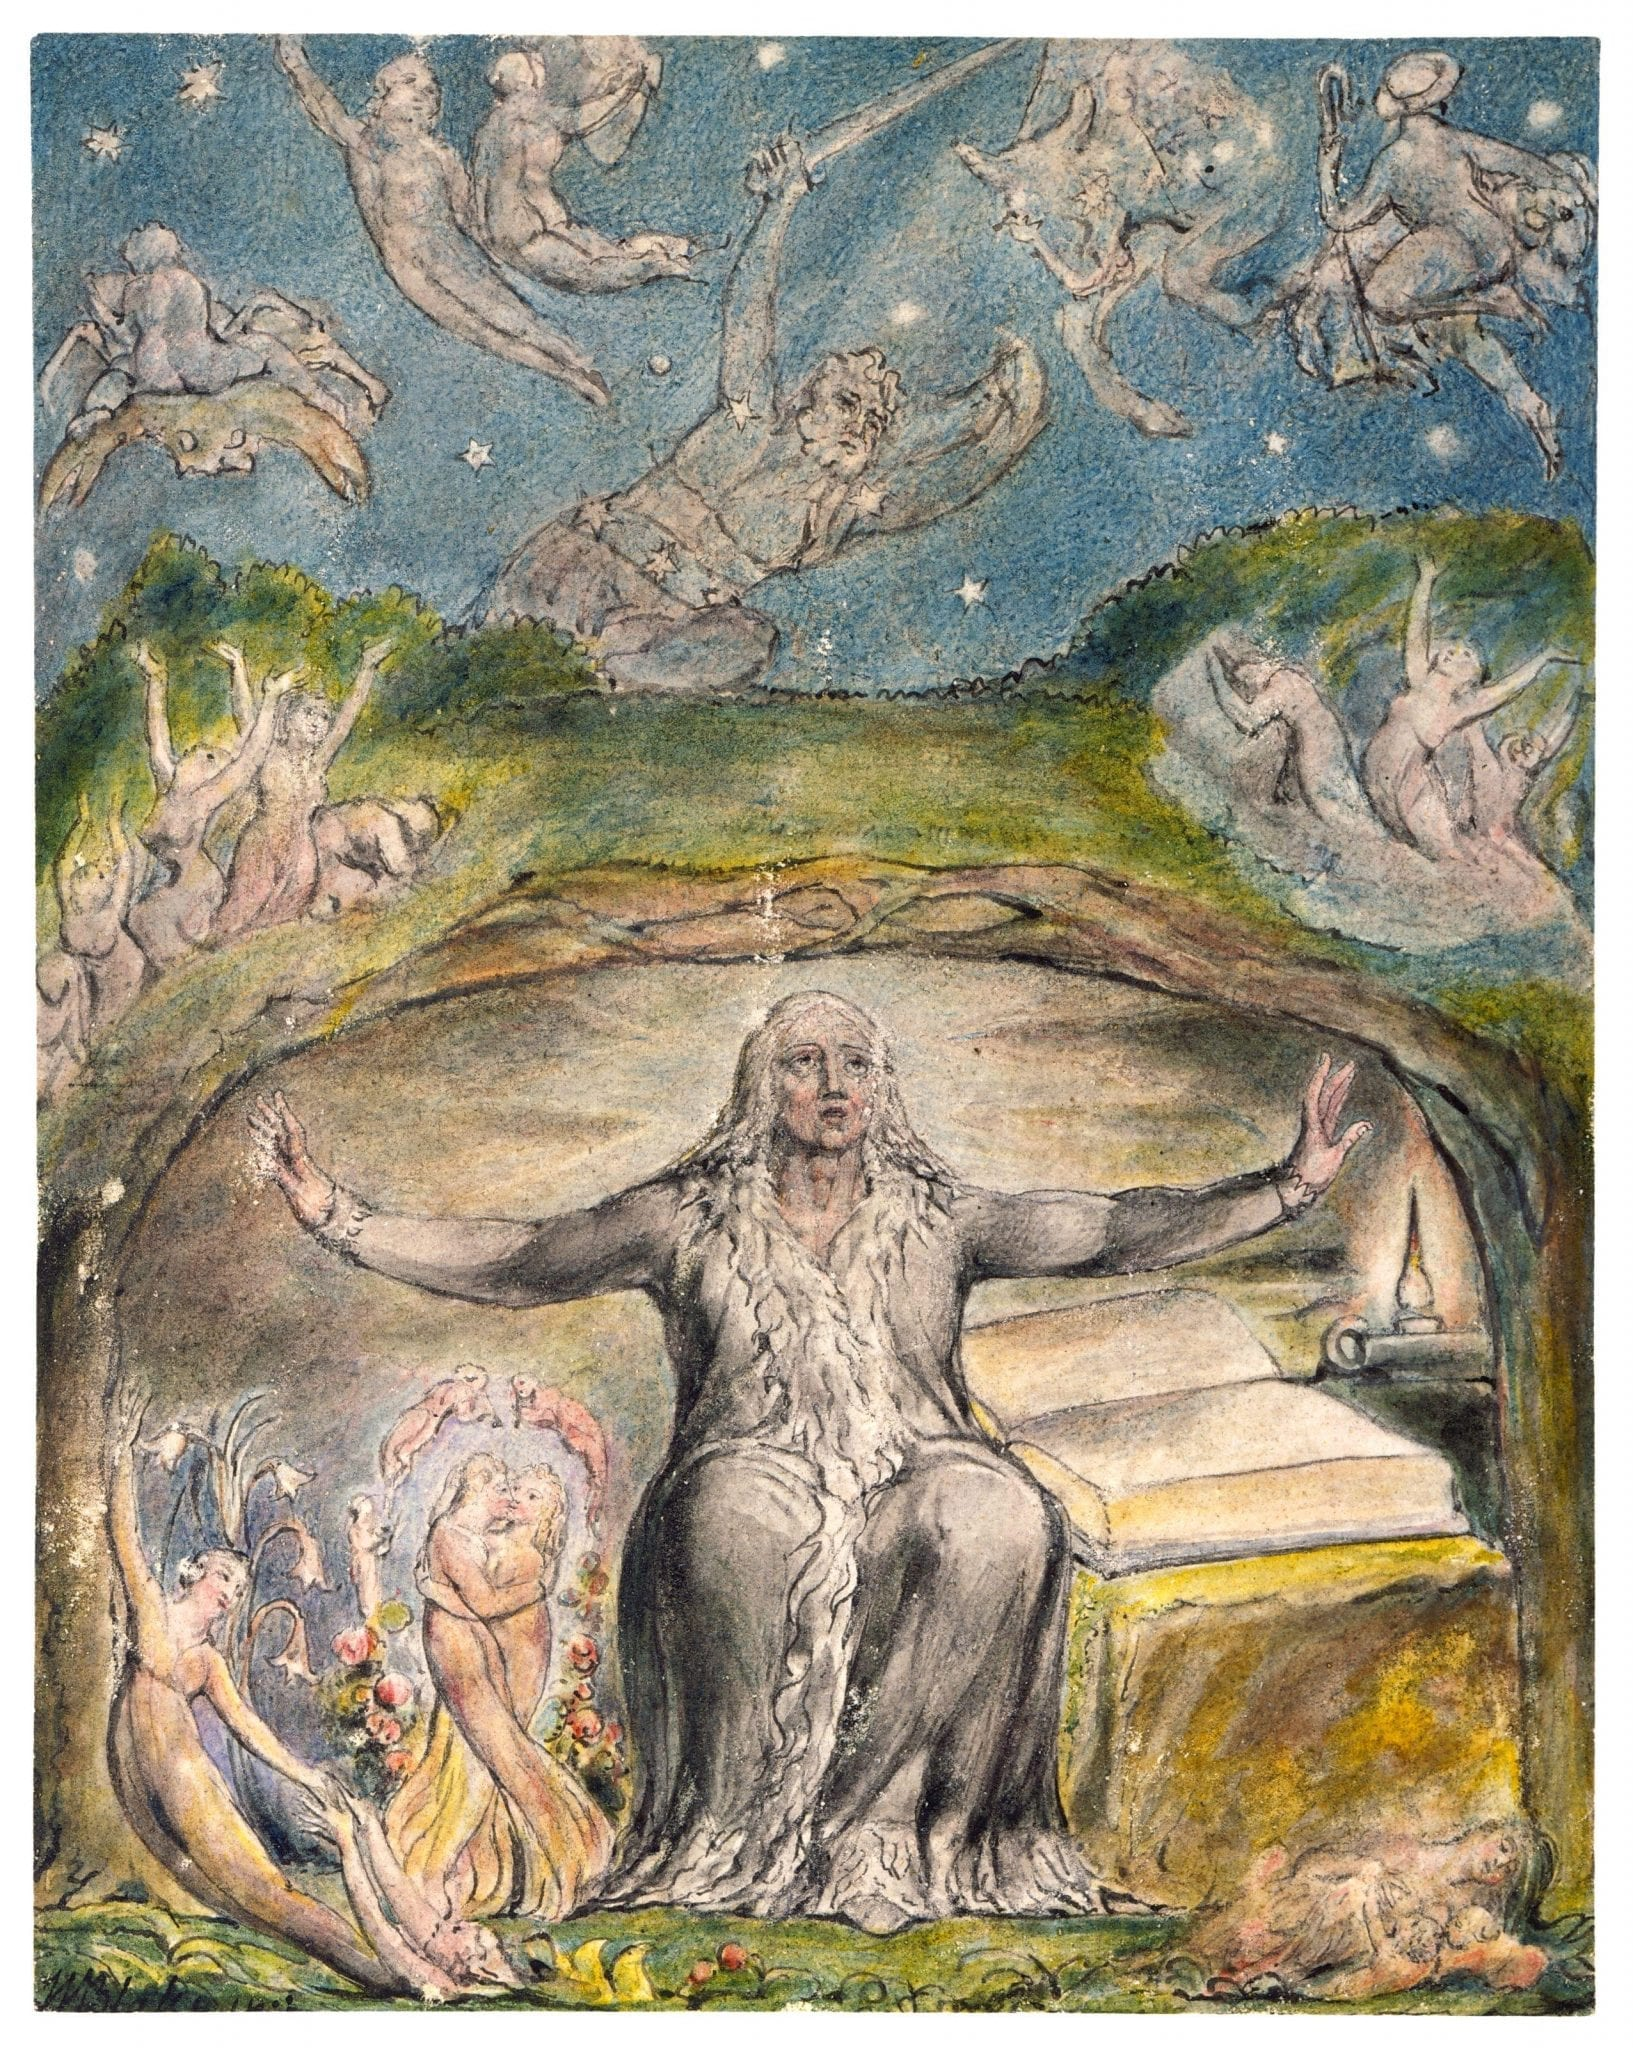 Image by William Blake